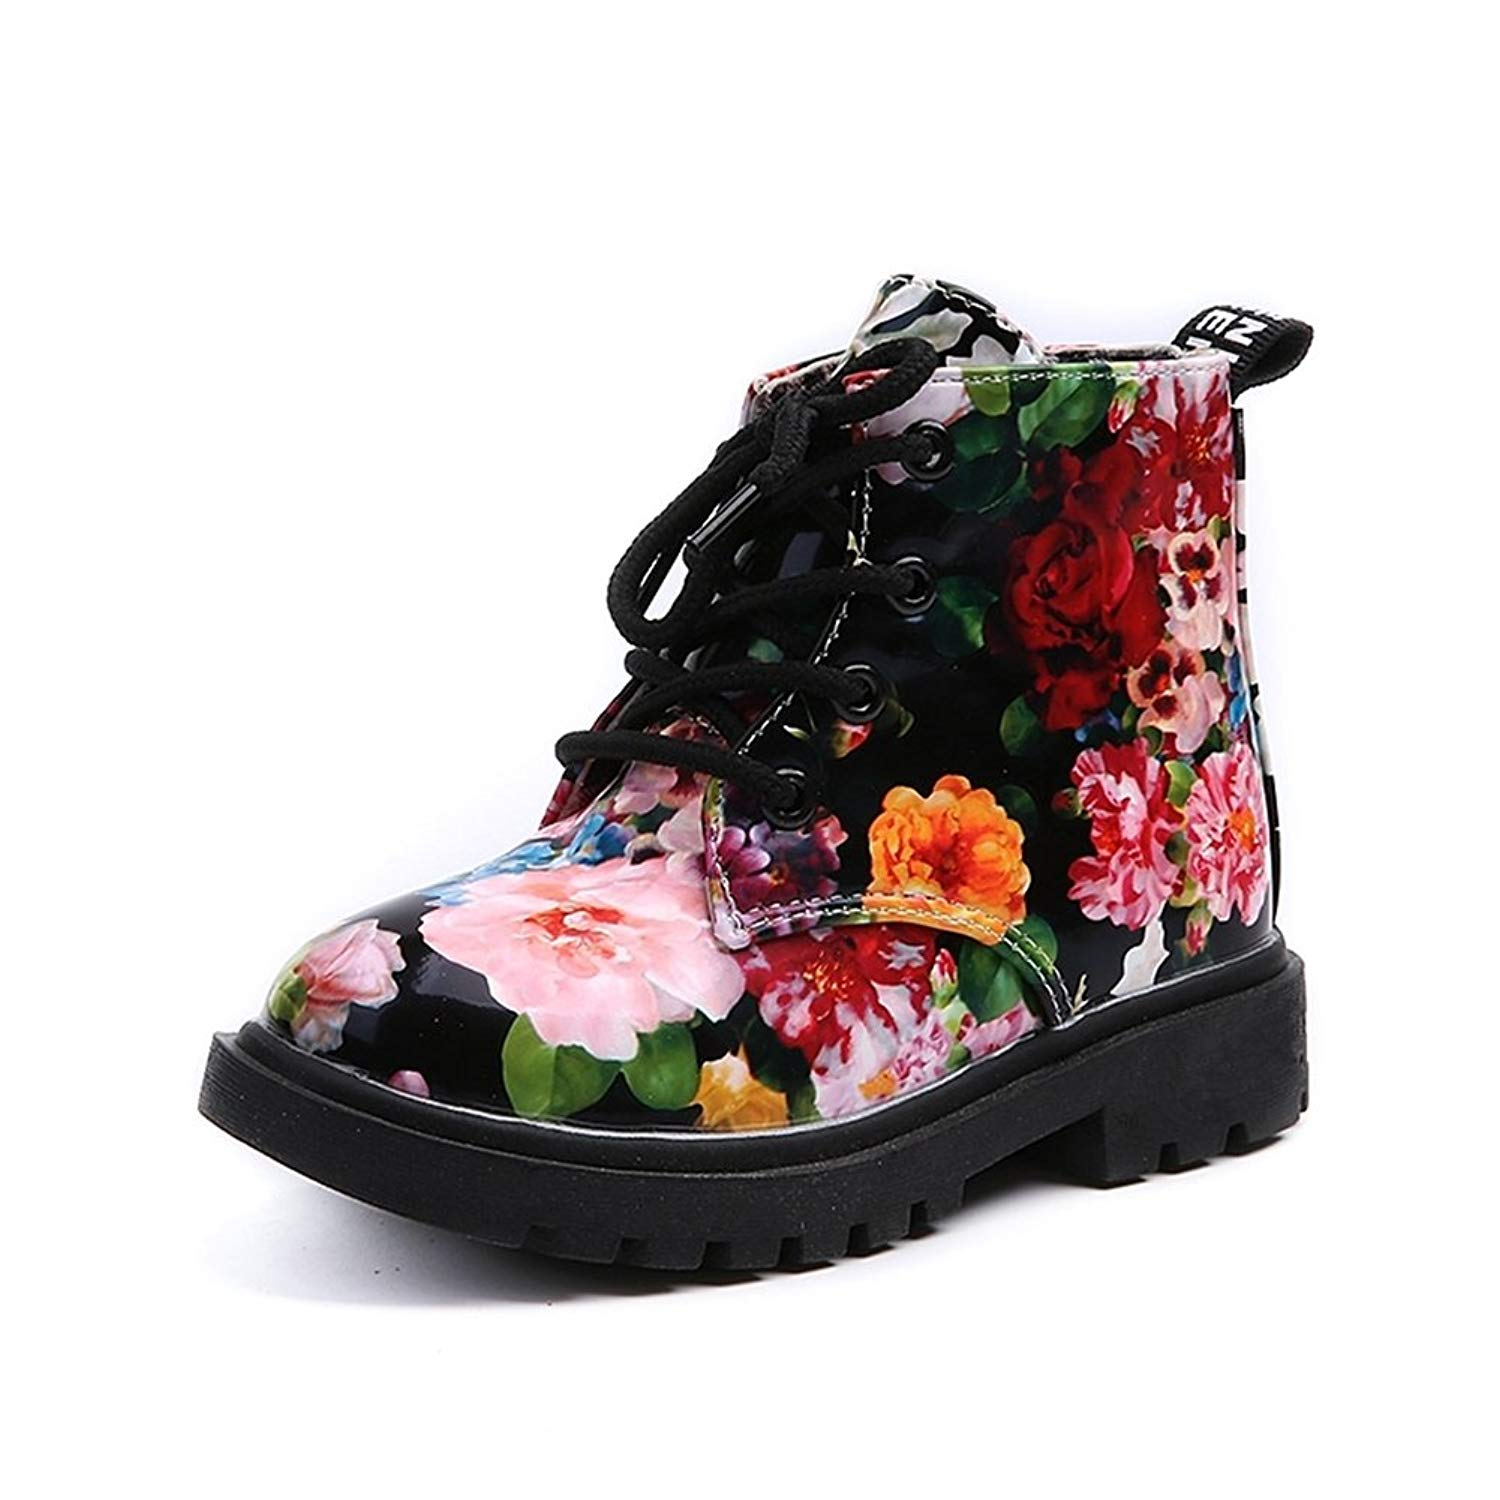 c67aef5b1706 Get Quotations · COMFY KIDS Boots Girls Boys Flower Print Lace up Warm Boots  Toddler Classic Shoes 607